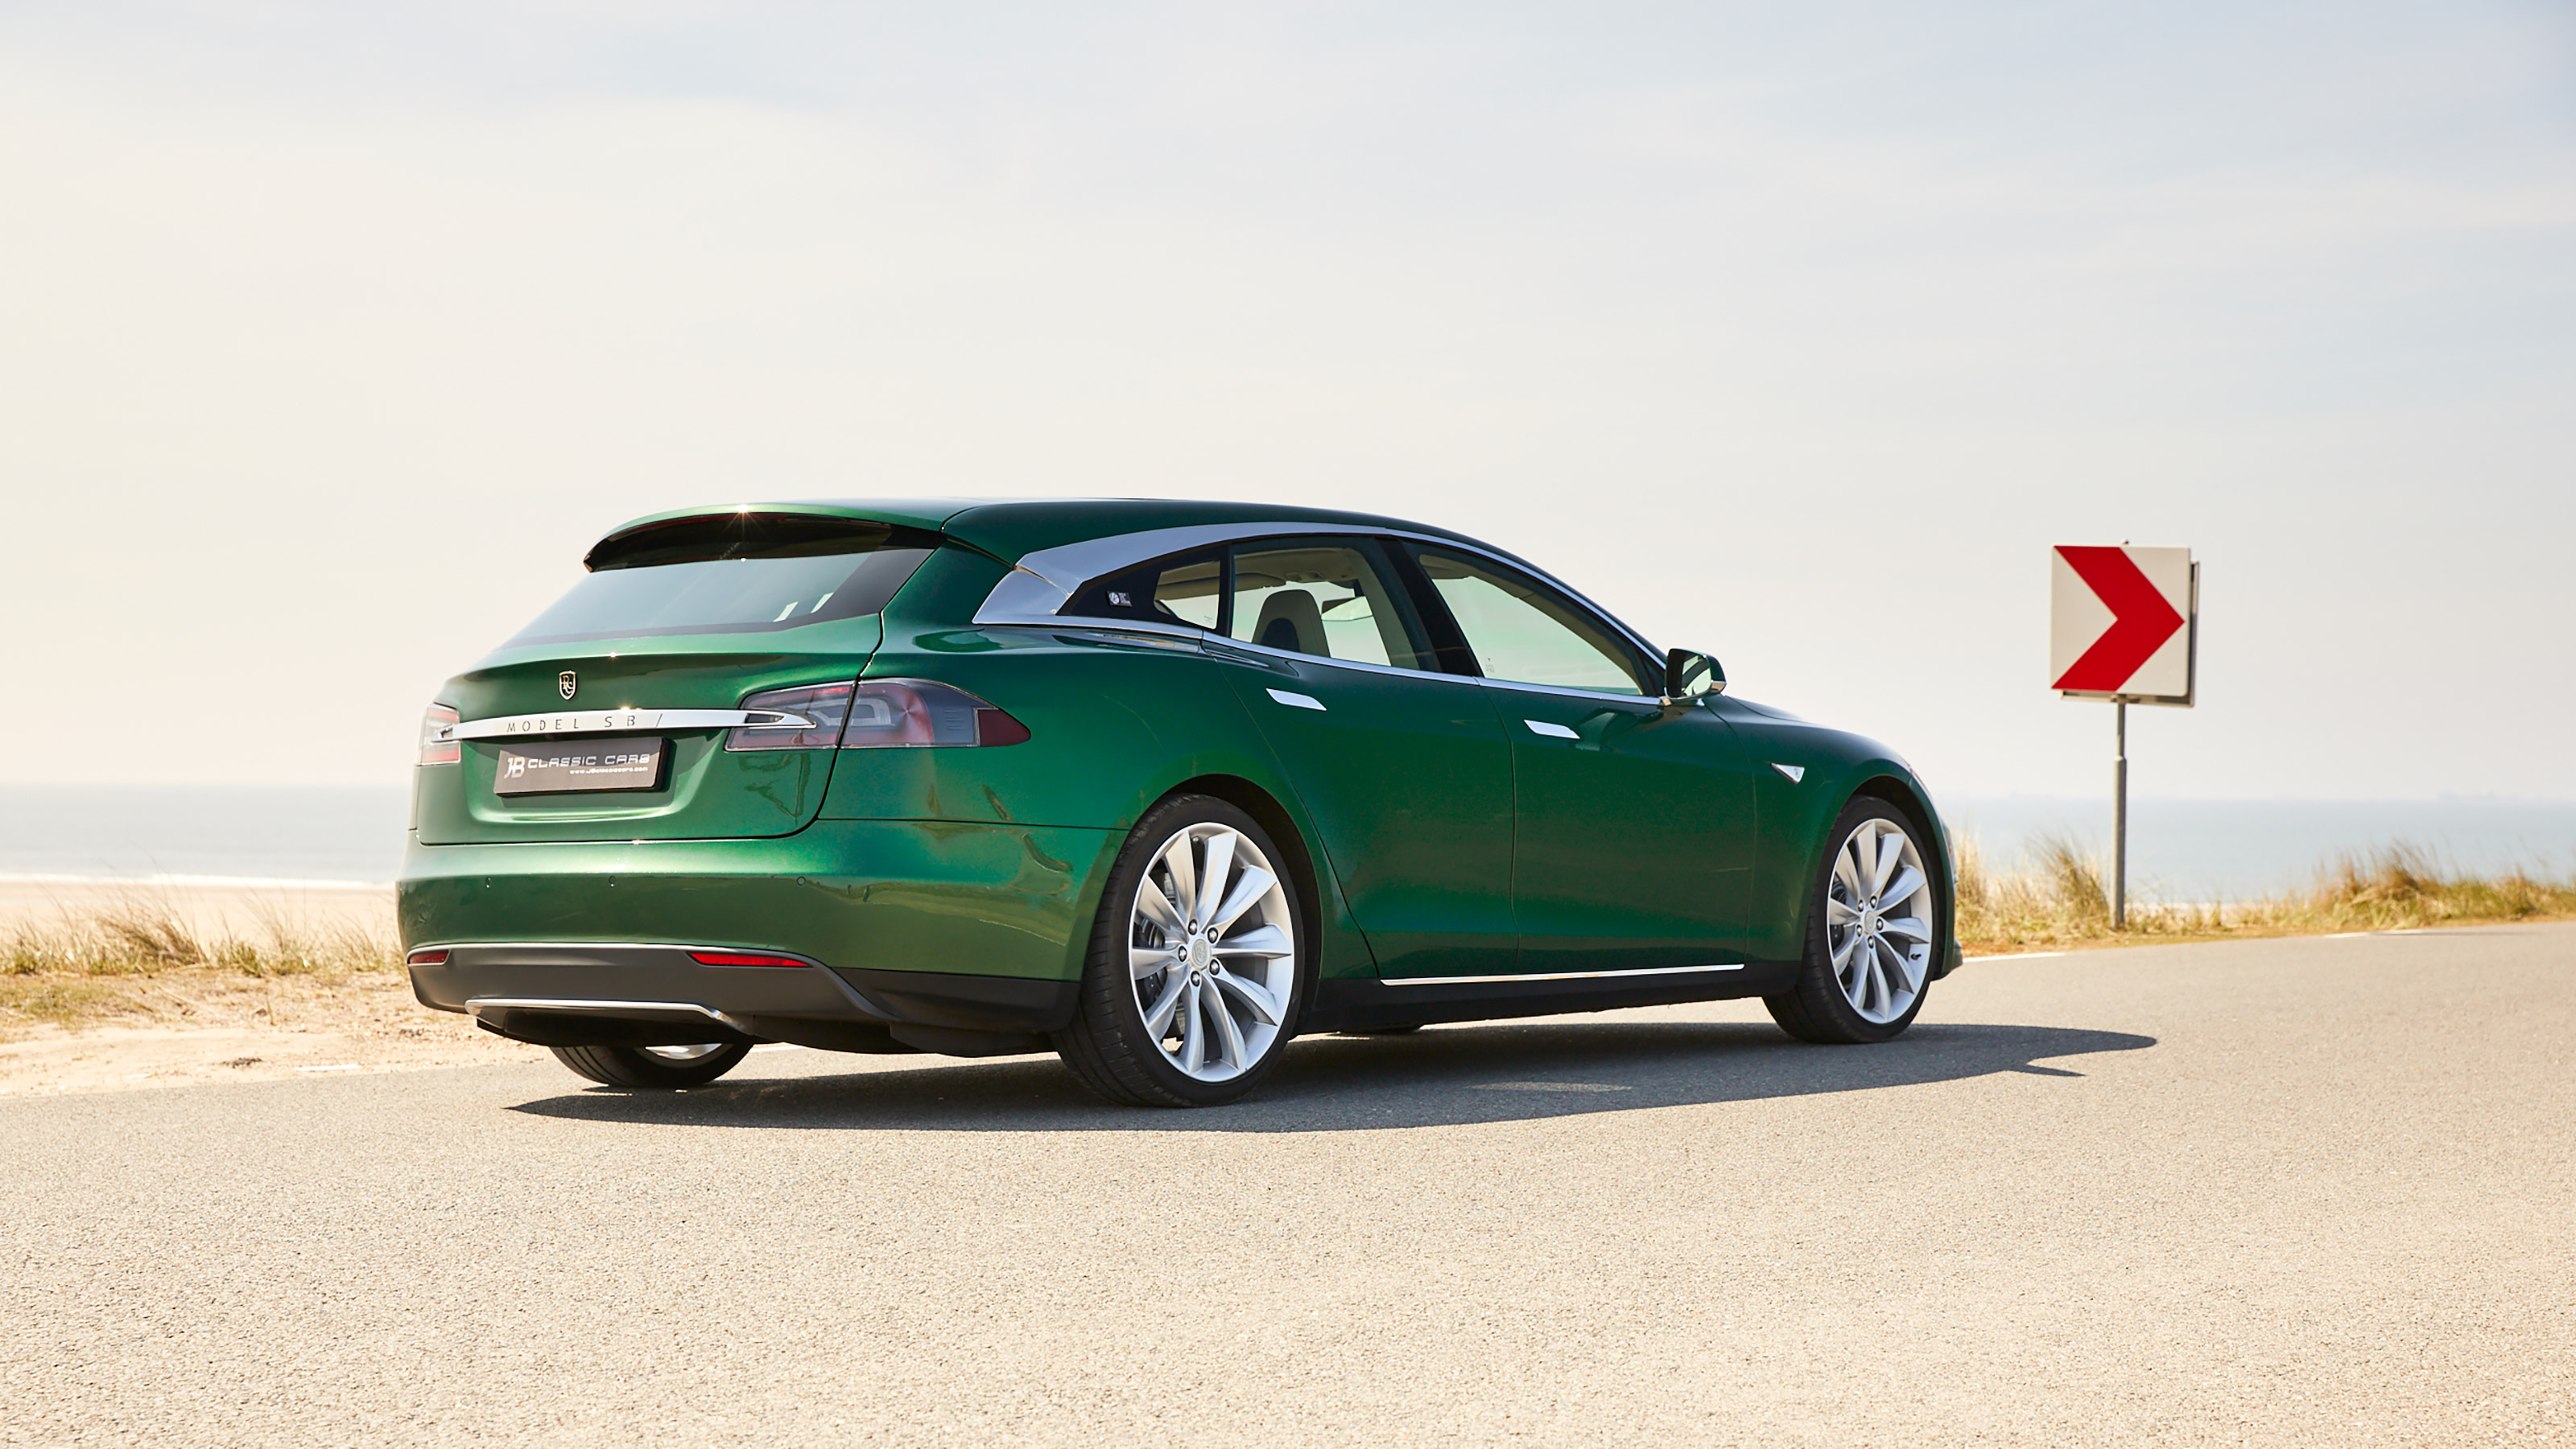 The one-off Tesla Model S Shooting Brake is already for sale